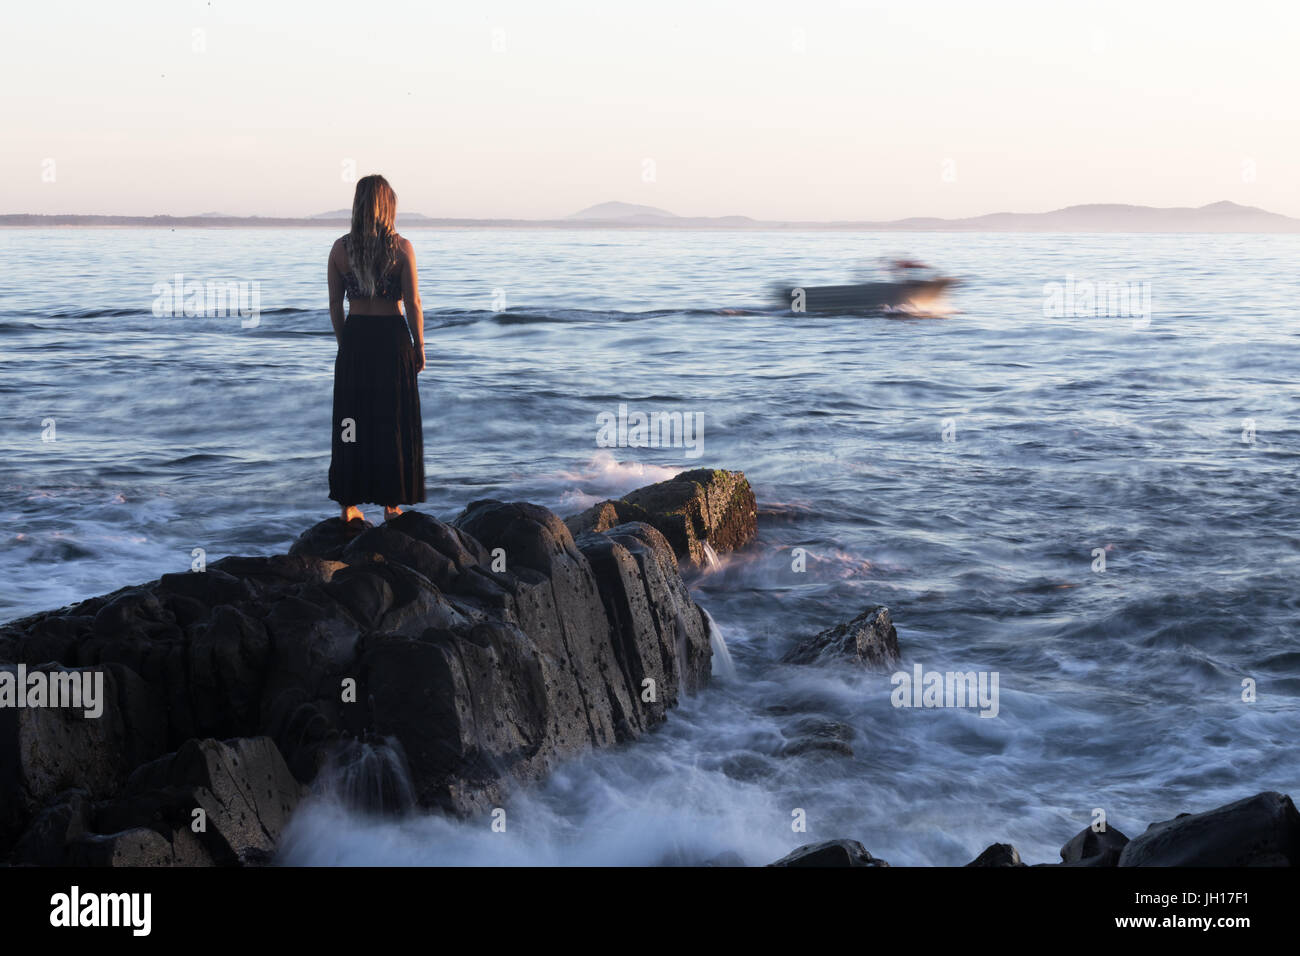 A woman watches from a rocky shoreline as a motion blurred boat goes by, heading out to sea. - Stock Image